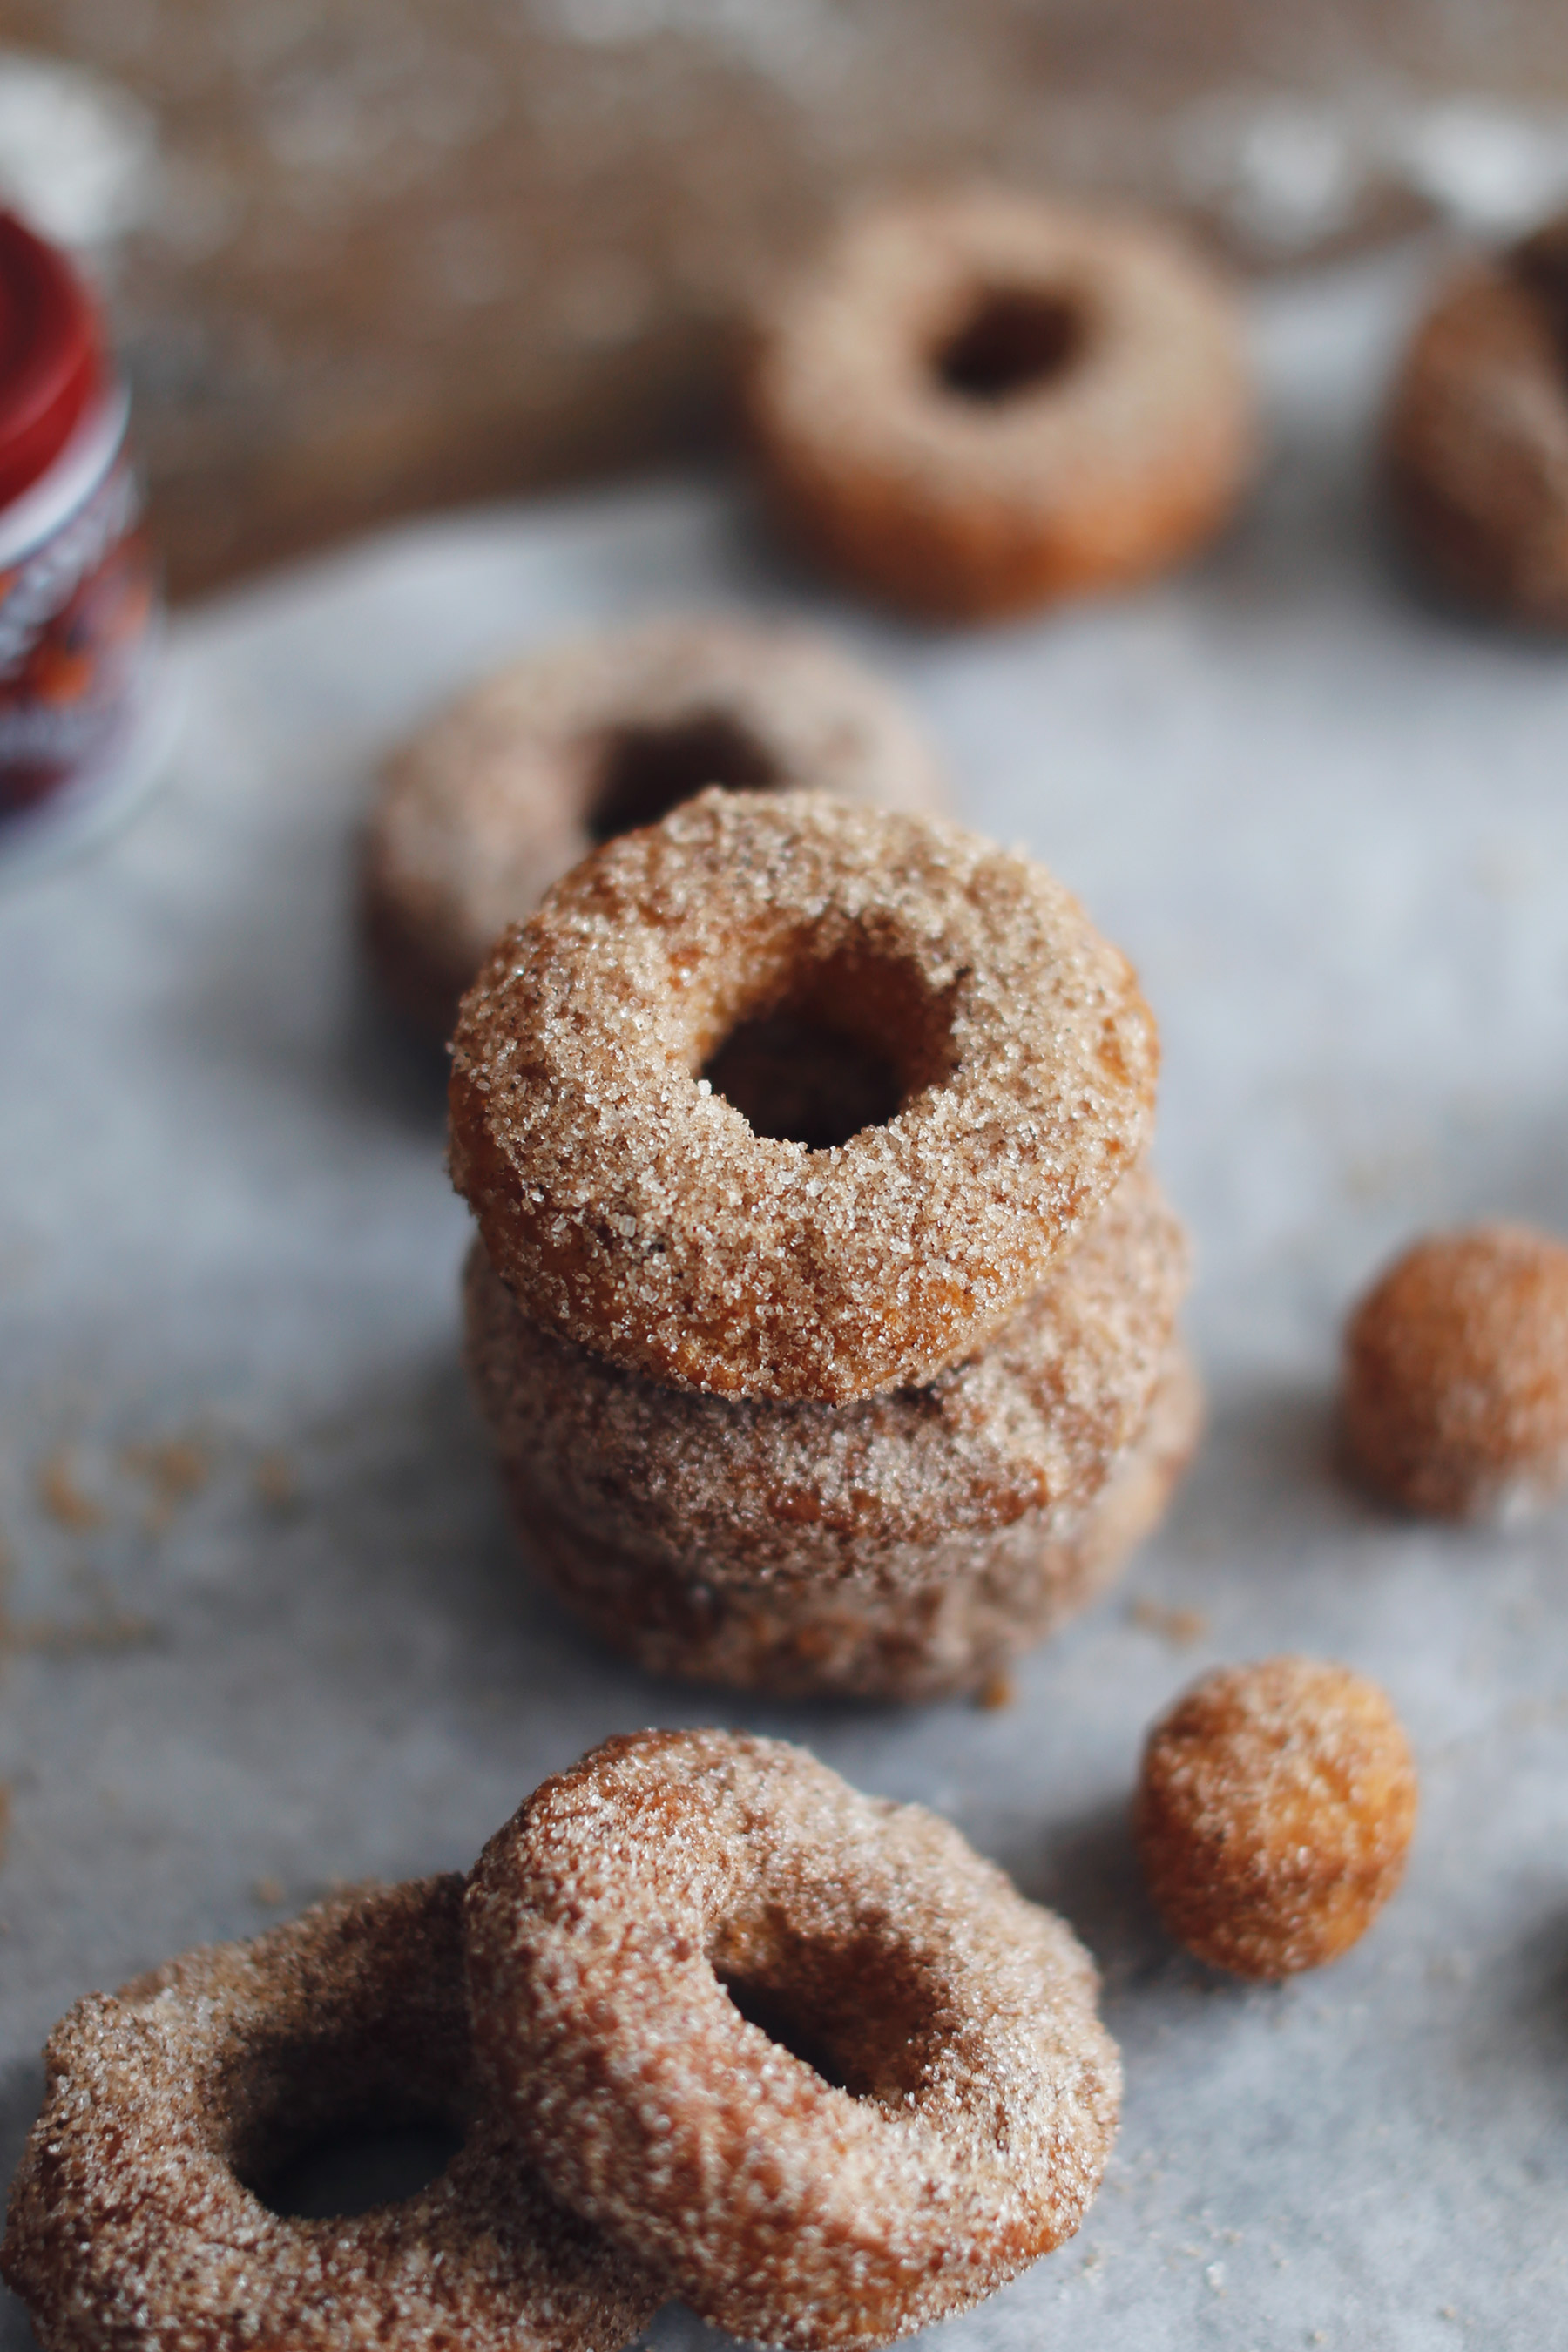 Cinnamon-and-sugar-doughnuts2